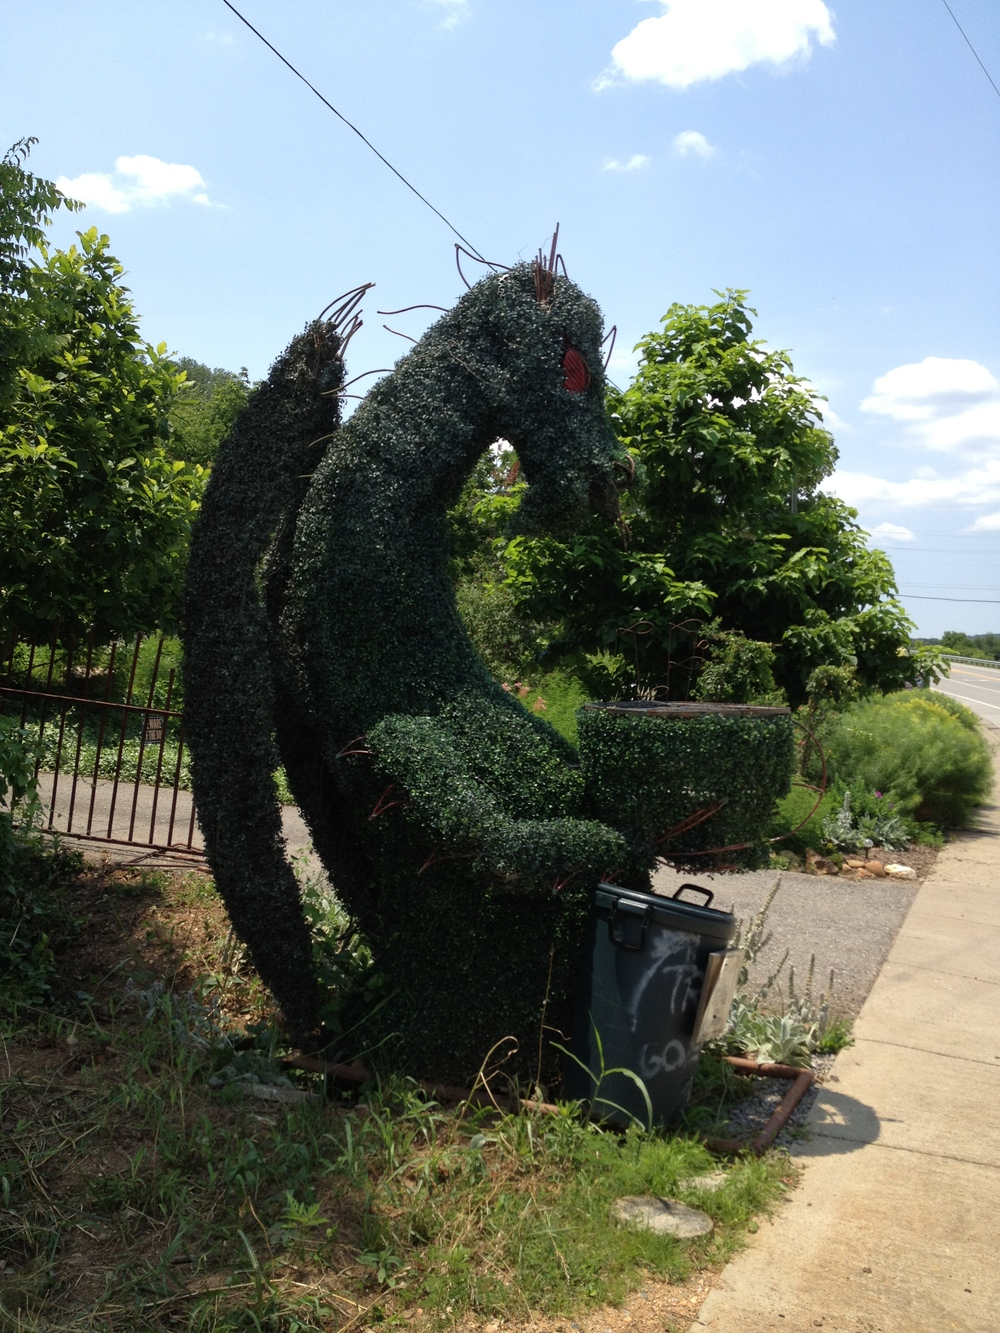 Dragon Bush with a grill